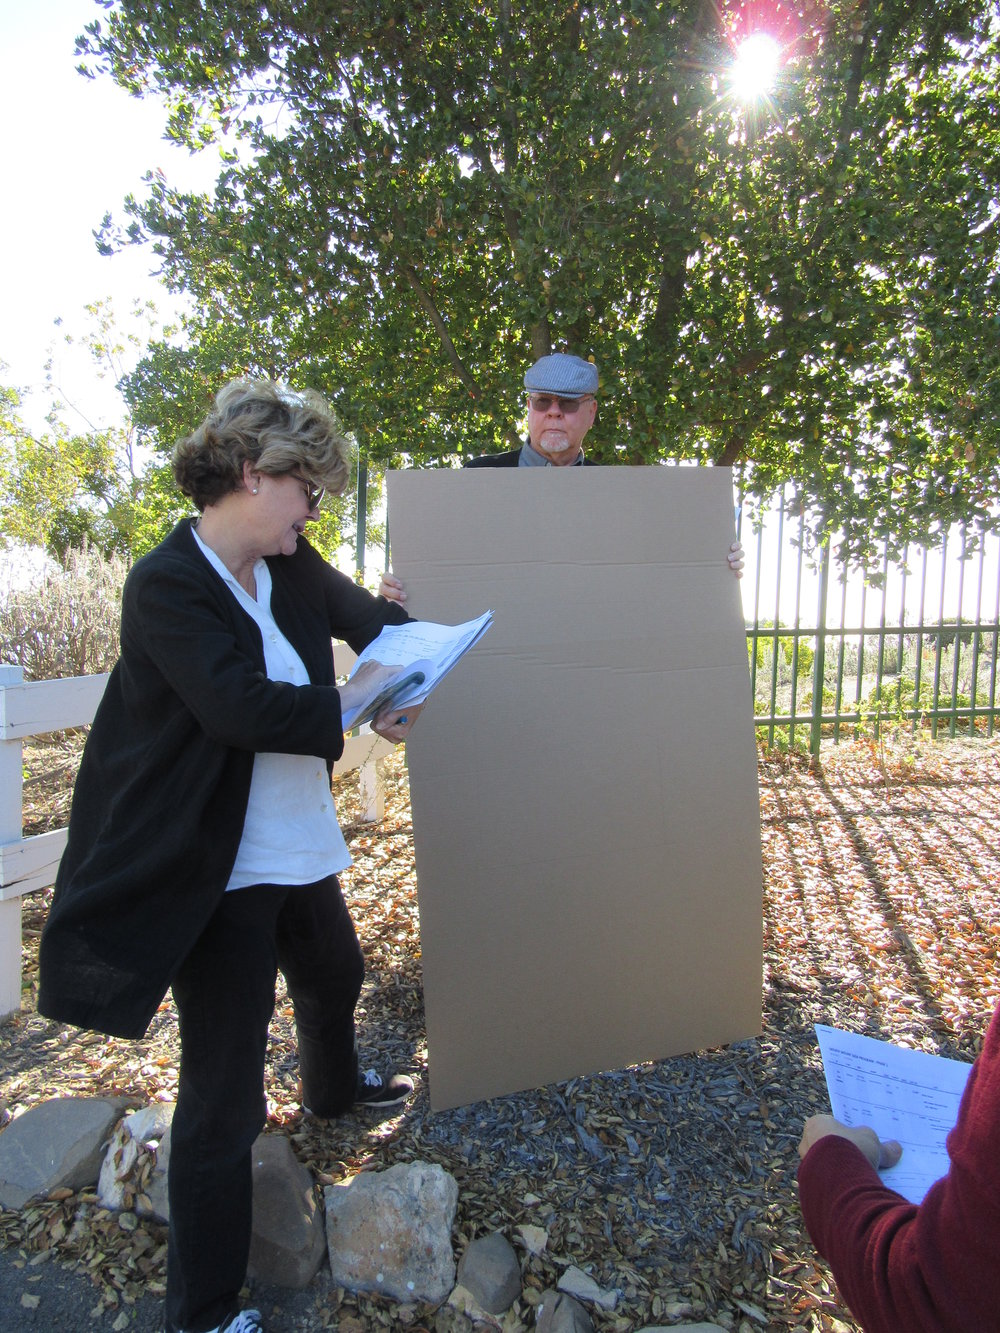 NANCY & BRYON PINCKERT and the Stone Sign & Marker Committee determine placement and final sizes of the stones using cardboard cutouts before the signs go into production. (Photo: Margaret Magnus, November 2016)